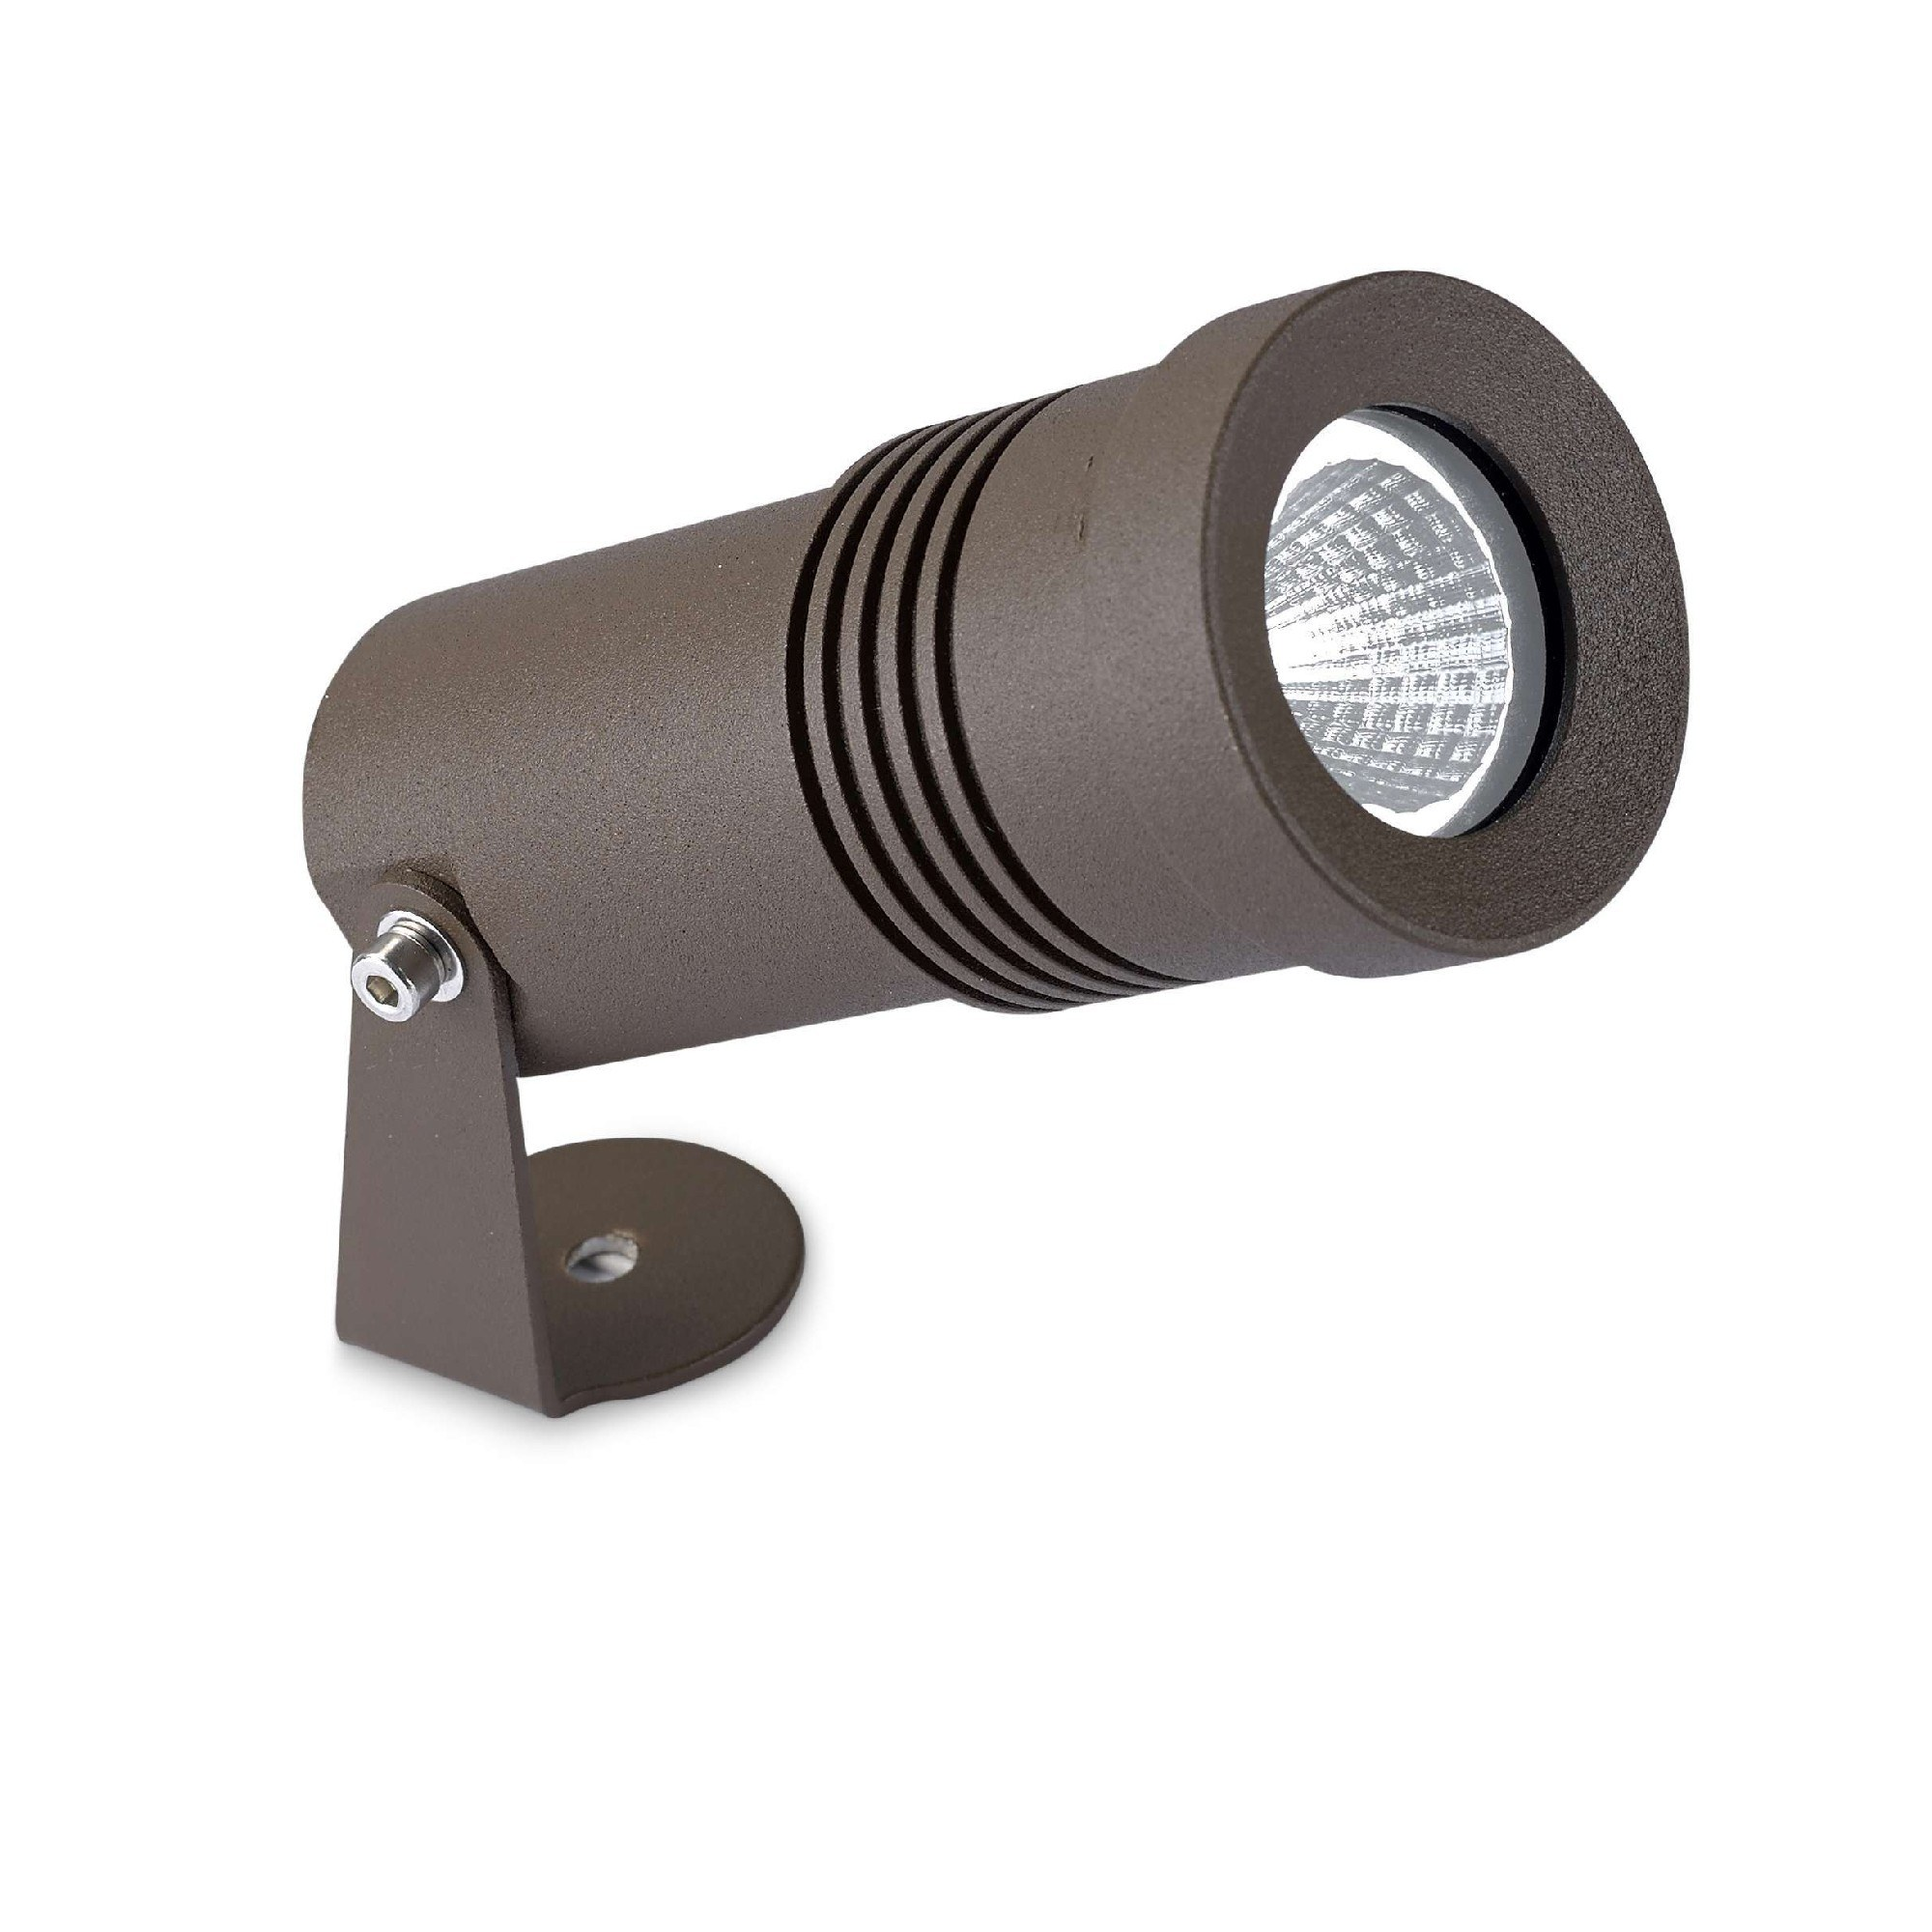 Leds C4 OUTDOOR 05 9881 J6 CMV1 LED lampen